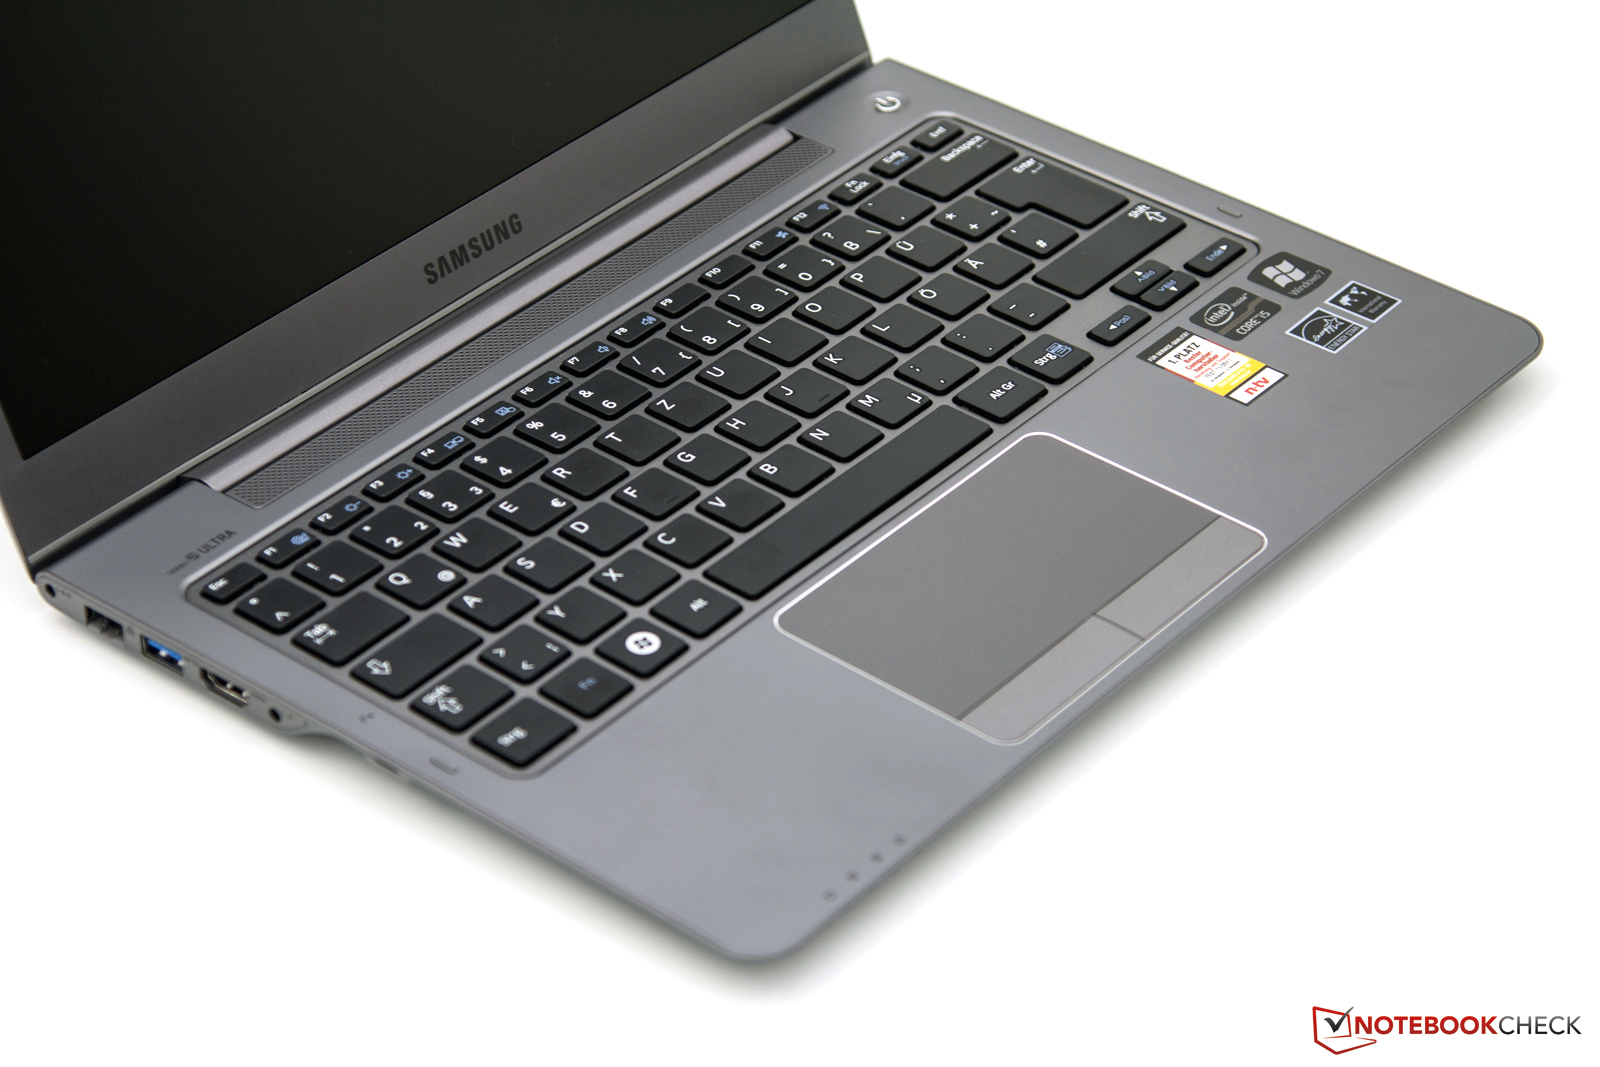 SAMSUNG 530U3C DRIVER WINDOWS 7 (2019)